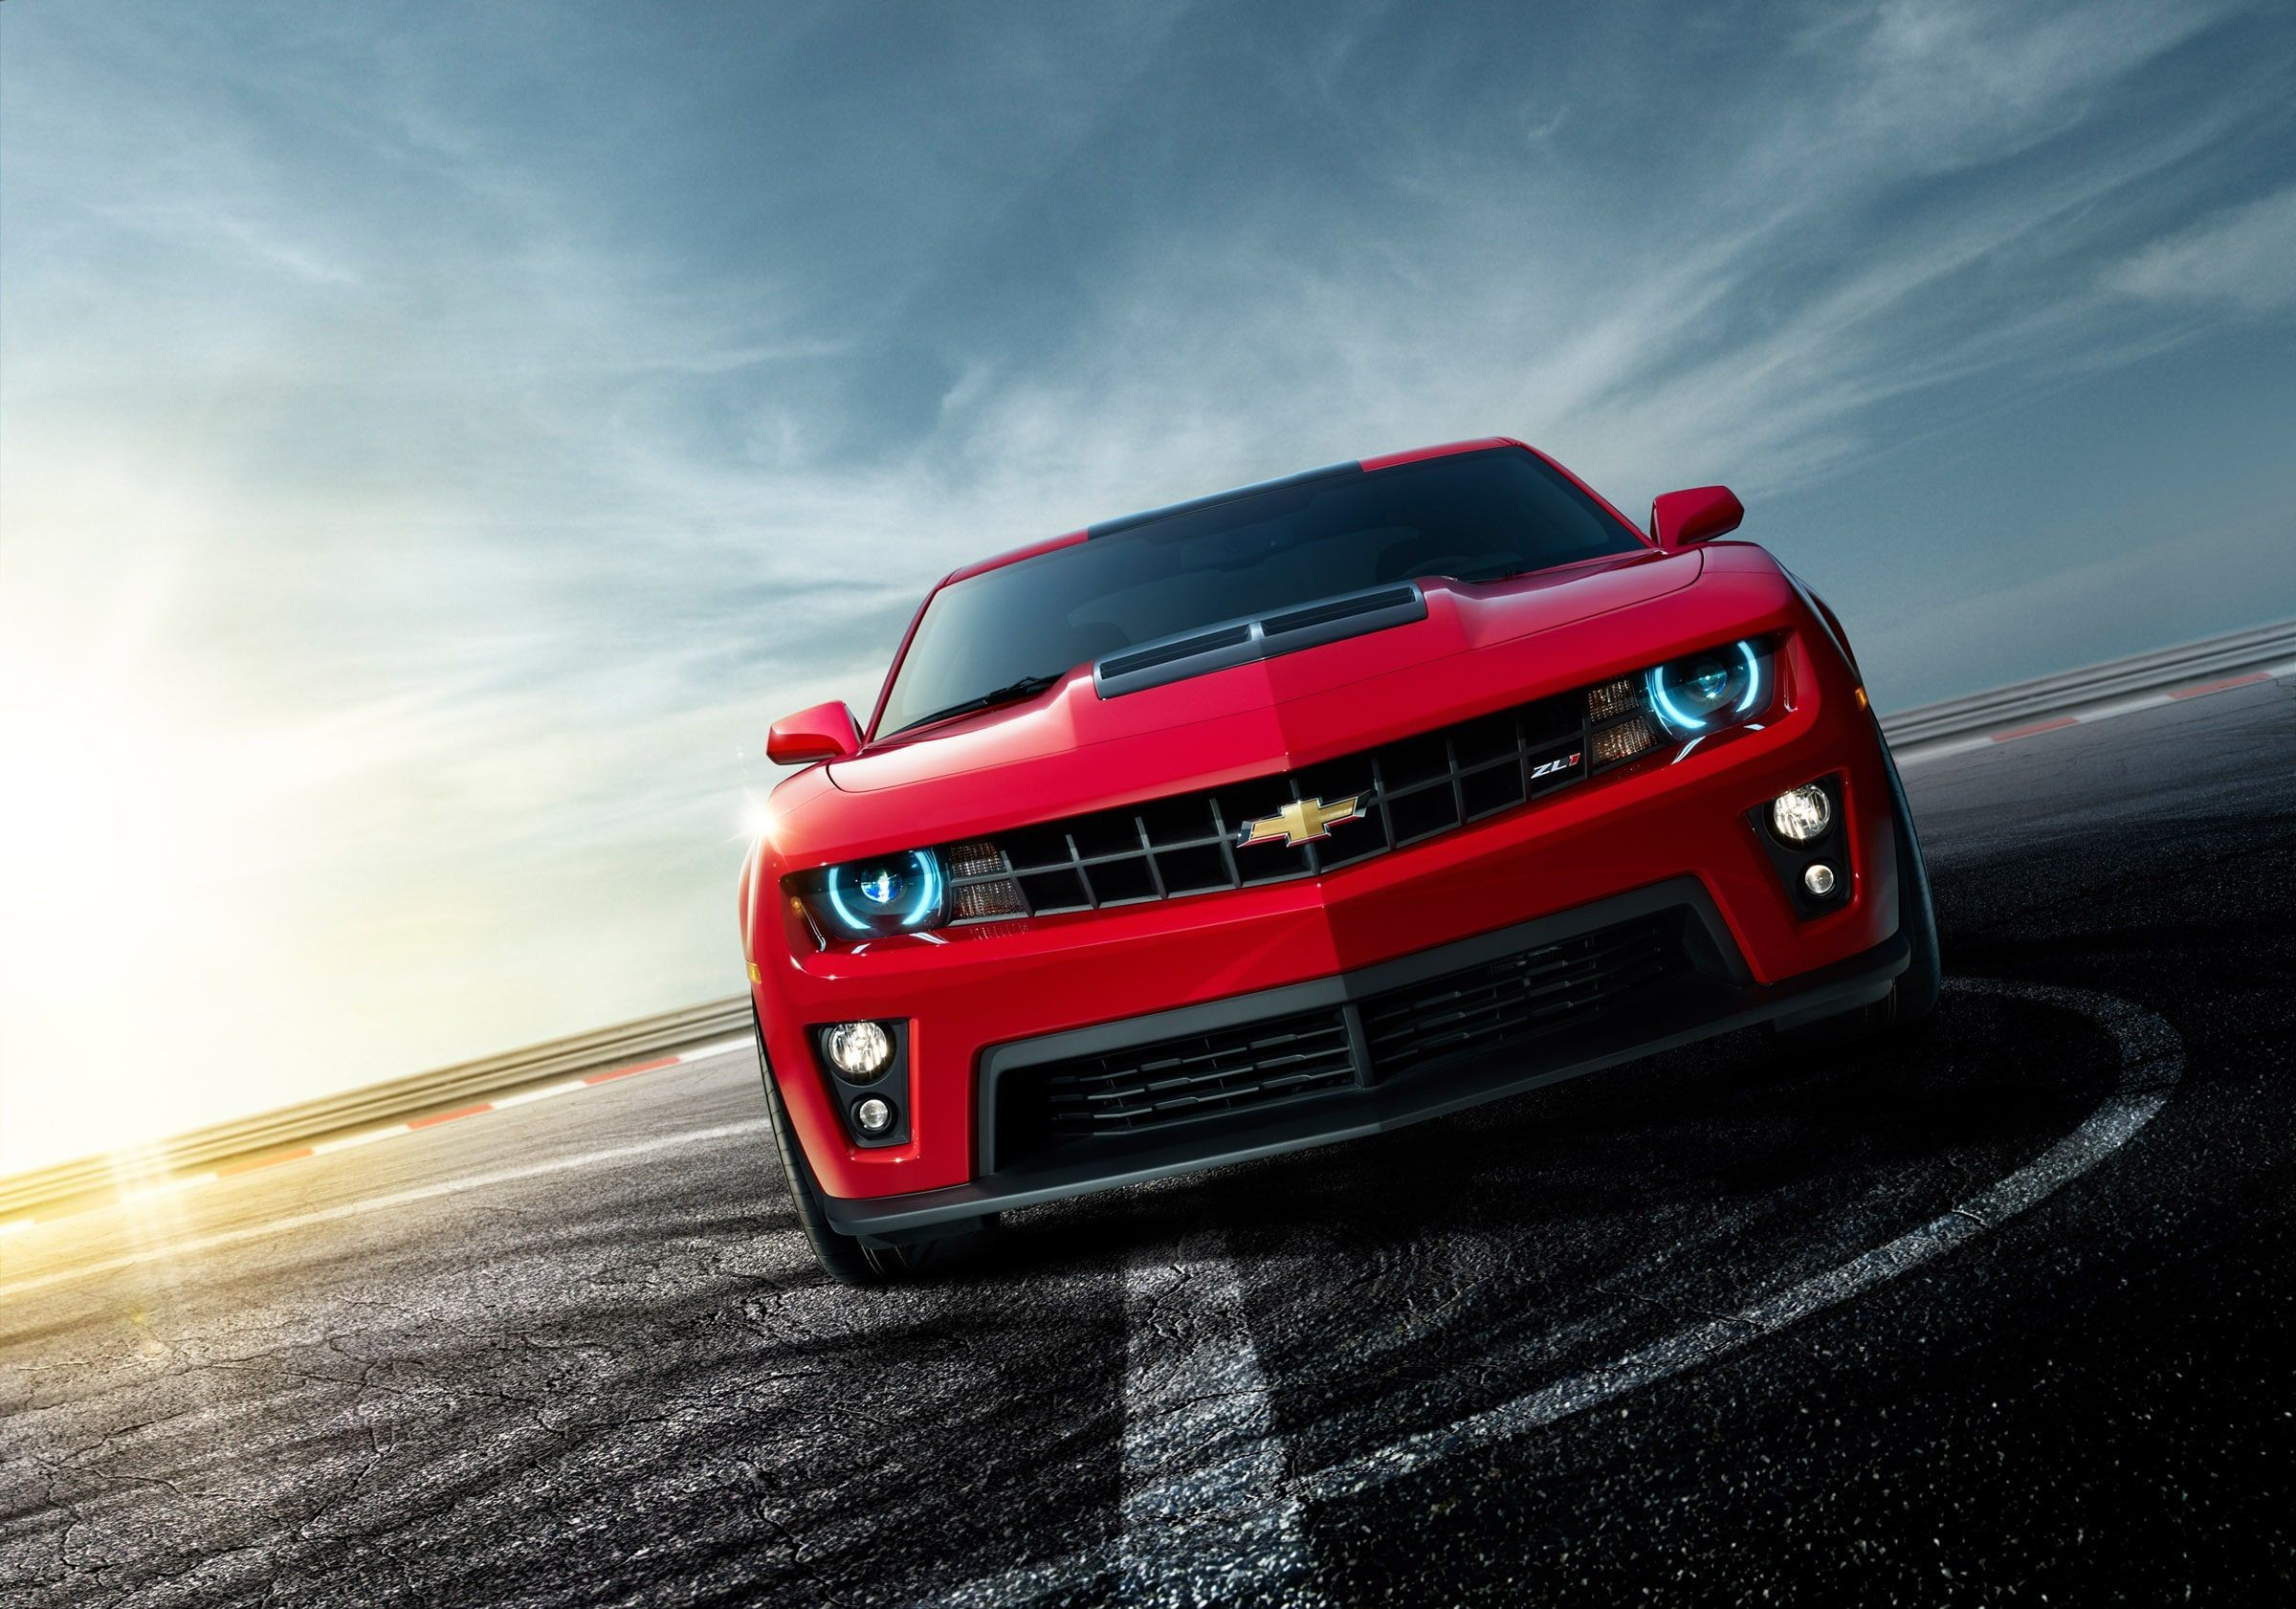 2400x1682 Chevrolet Camaro Wallpapers High Quality Download Free